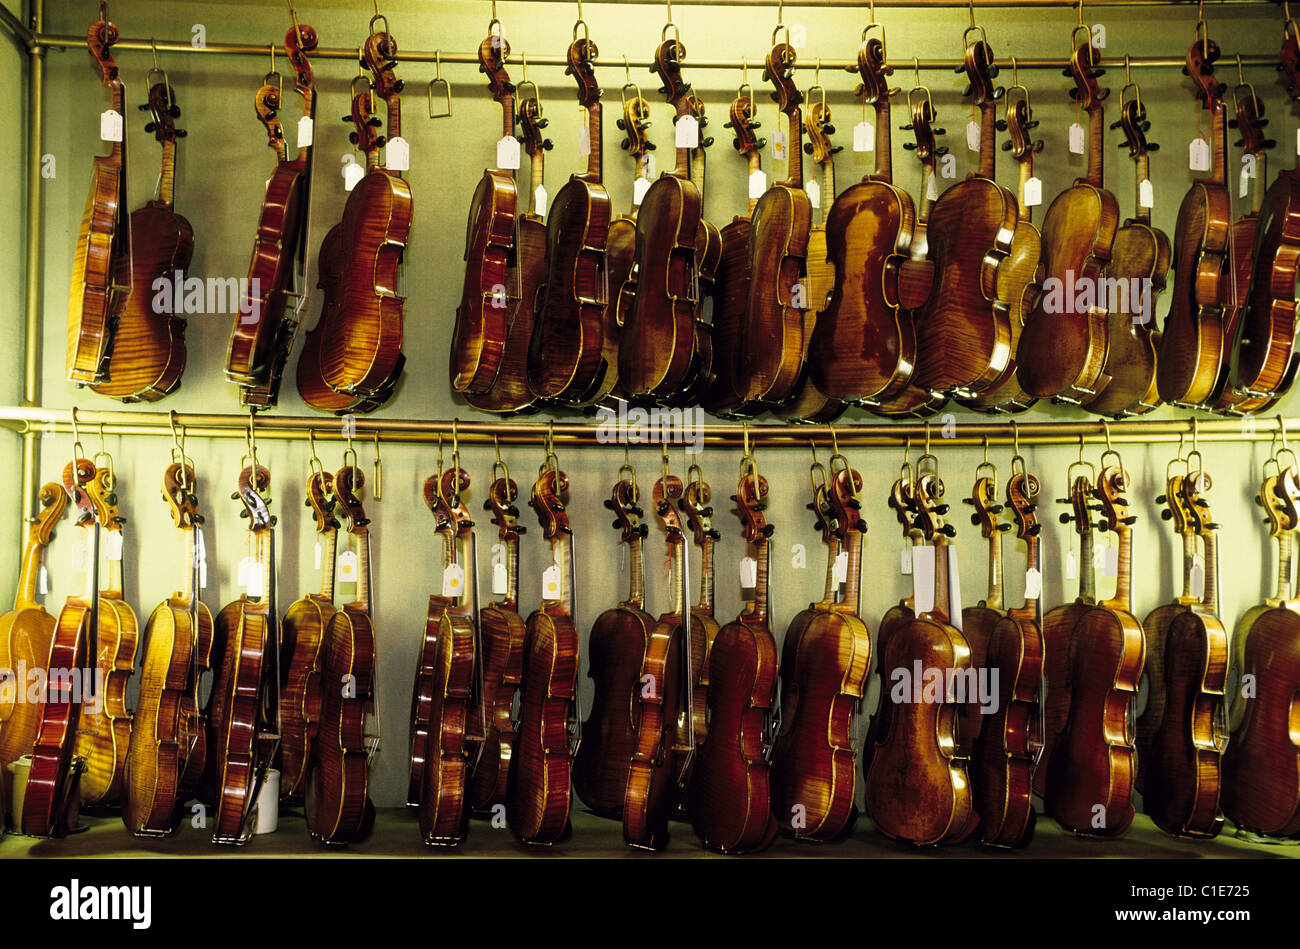 France, Paris, violins, Watelot Rampal stringed instrument maker - Stock Image